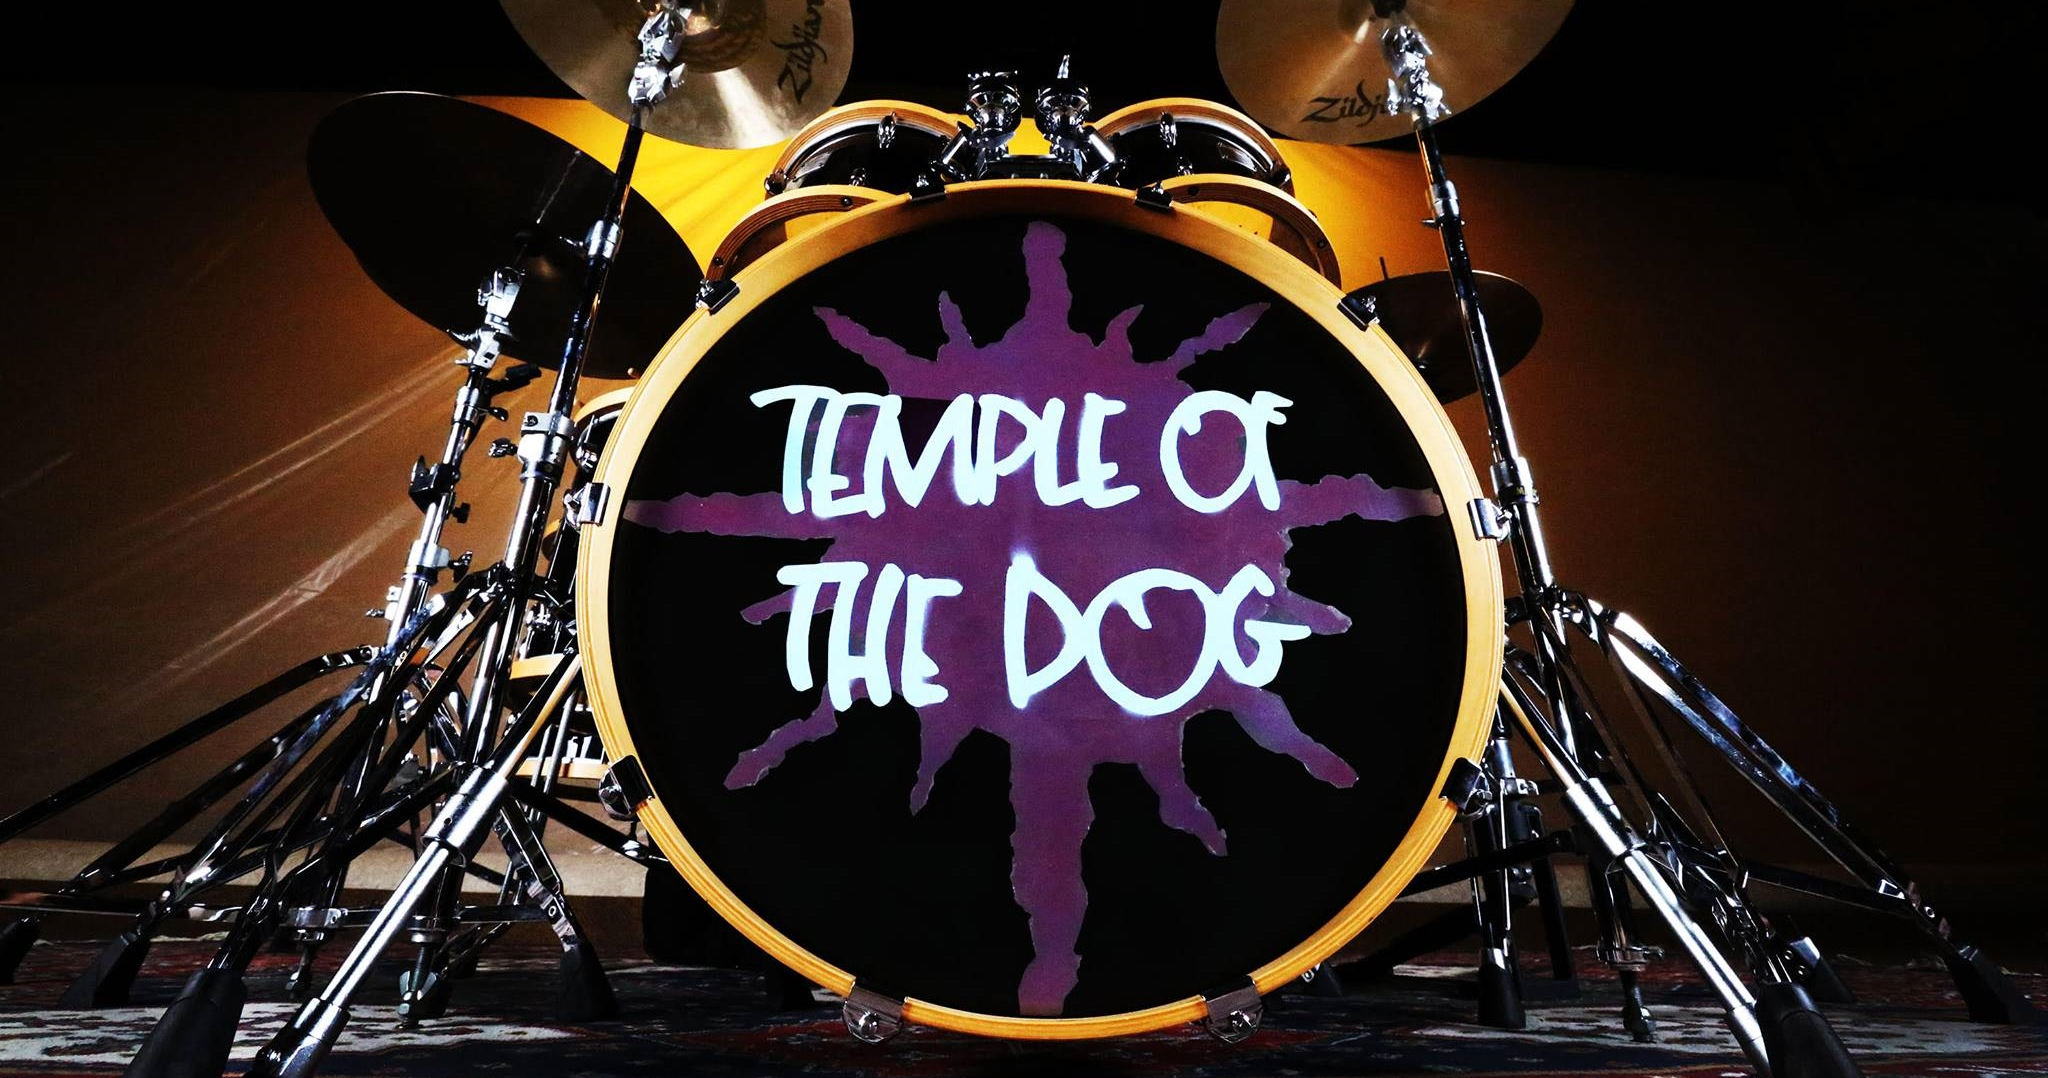 temple of the dog album